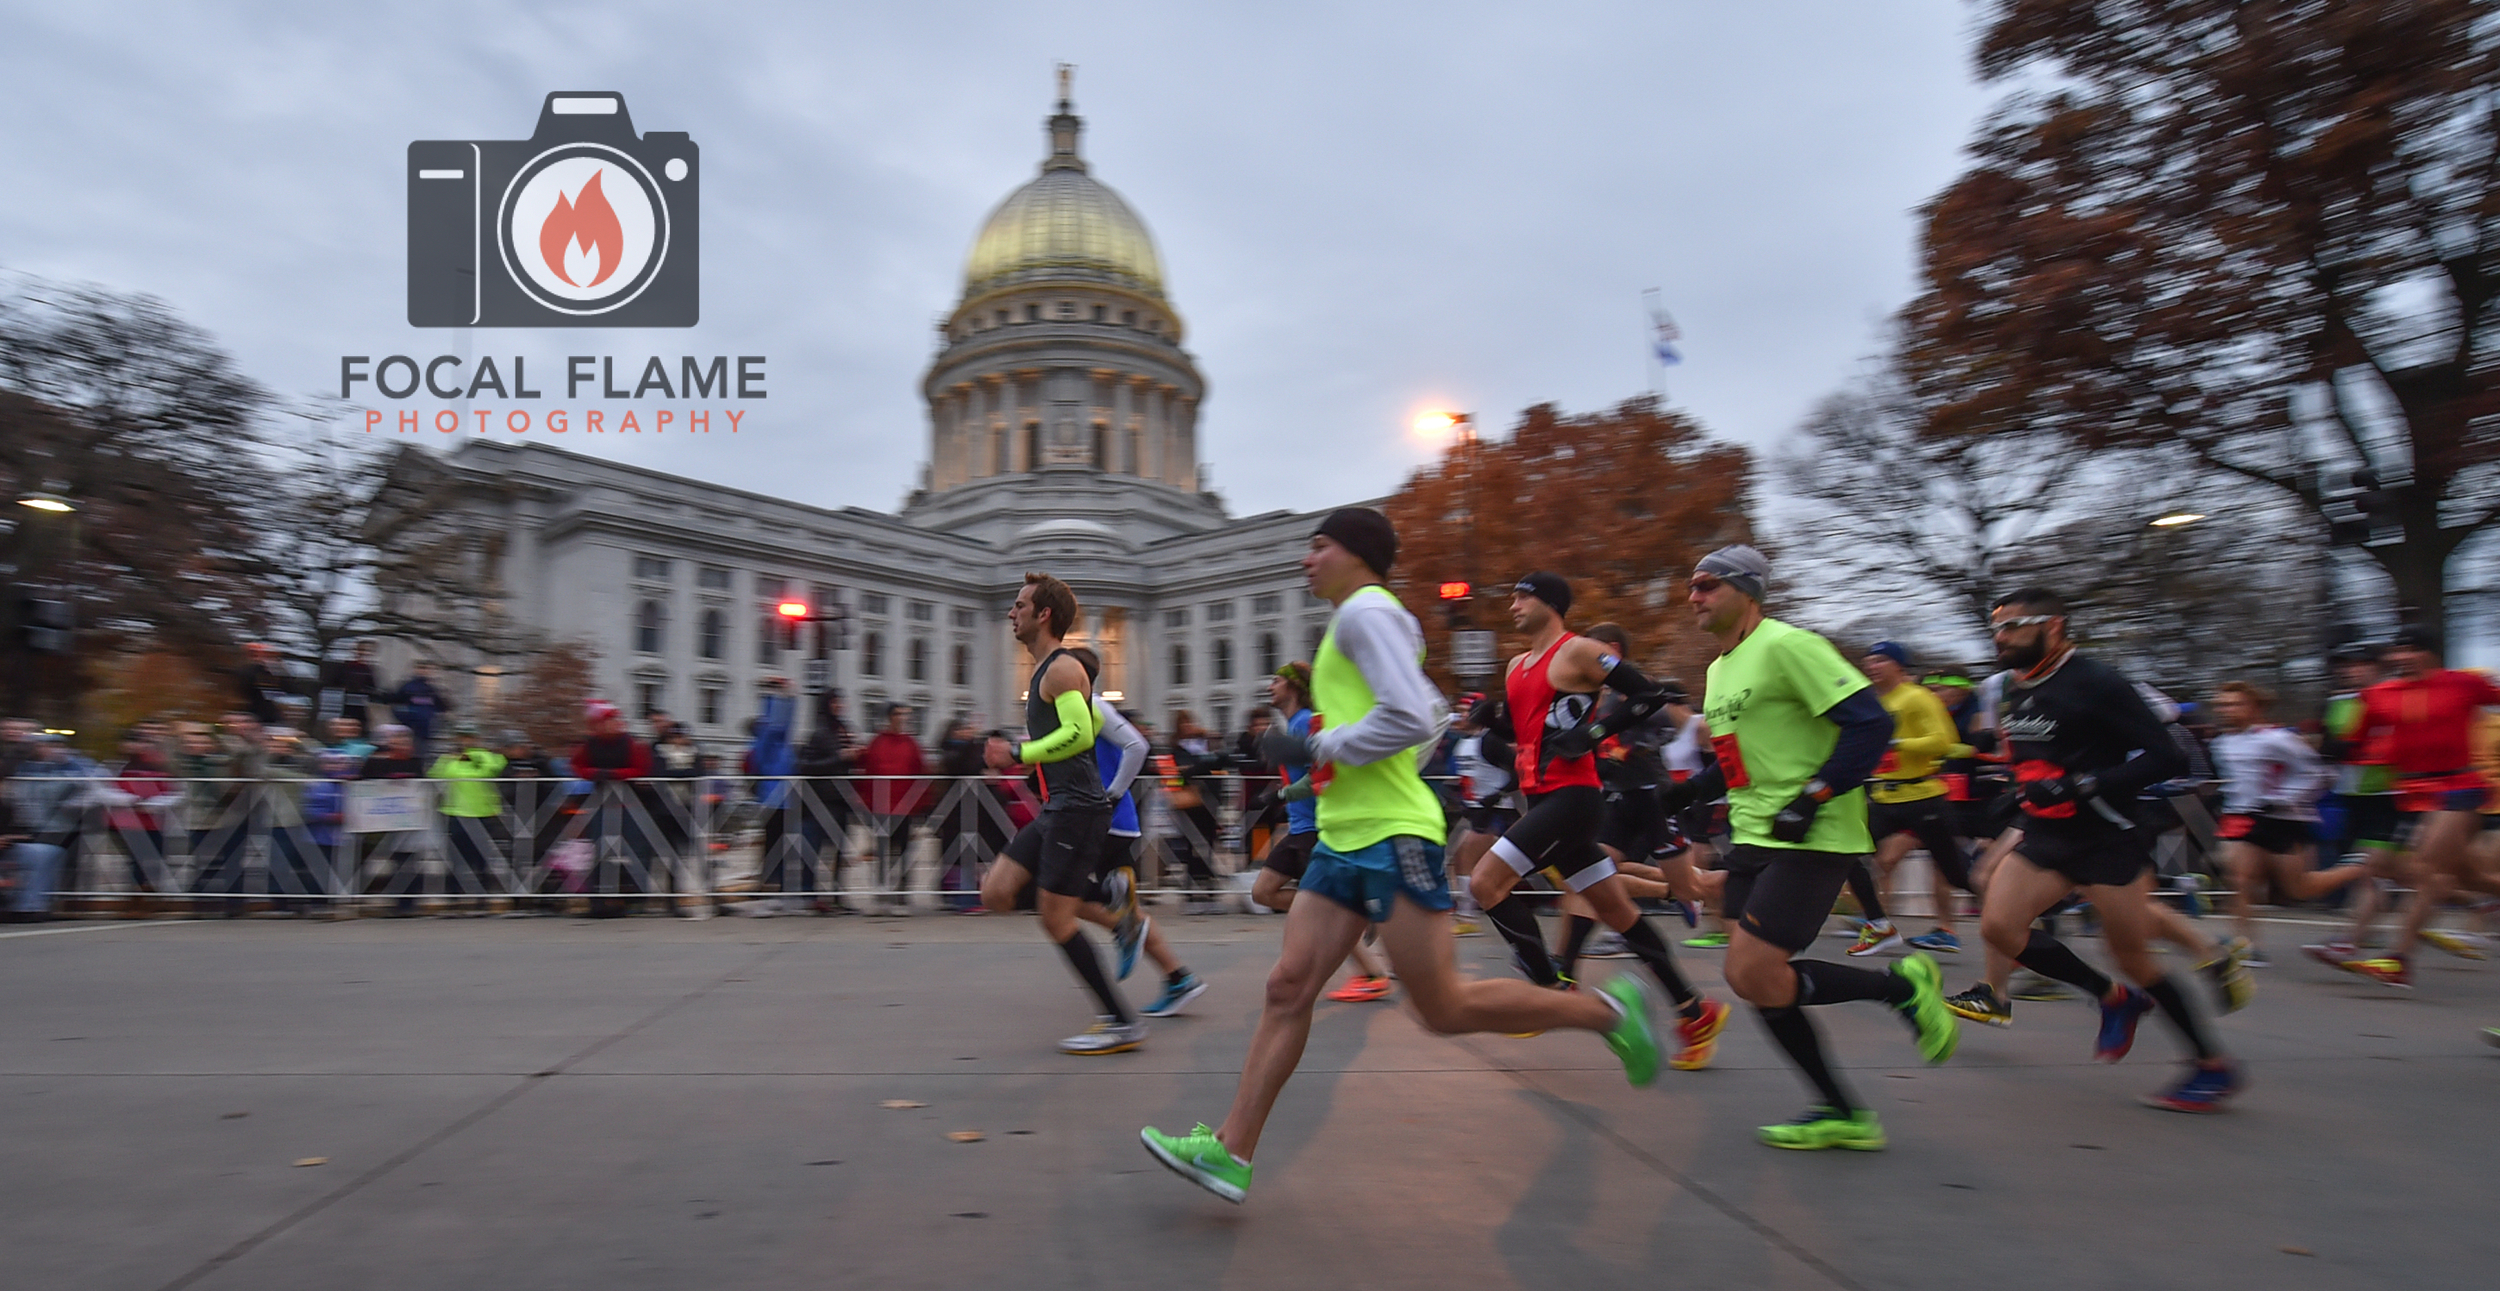 This photo from the 2014 Fall Madison Marathon was used to create the 2015 finisher's medal. © 2014 Focal Flame Photography | Credit: Clint Thayer